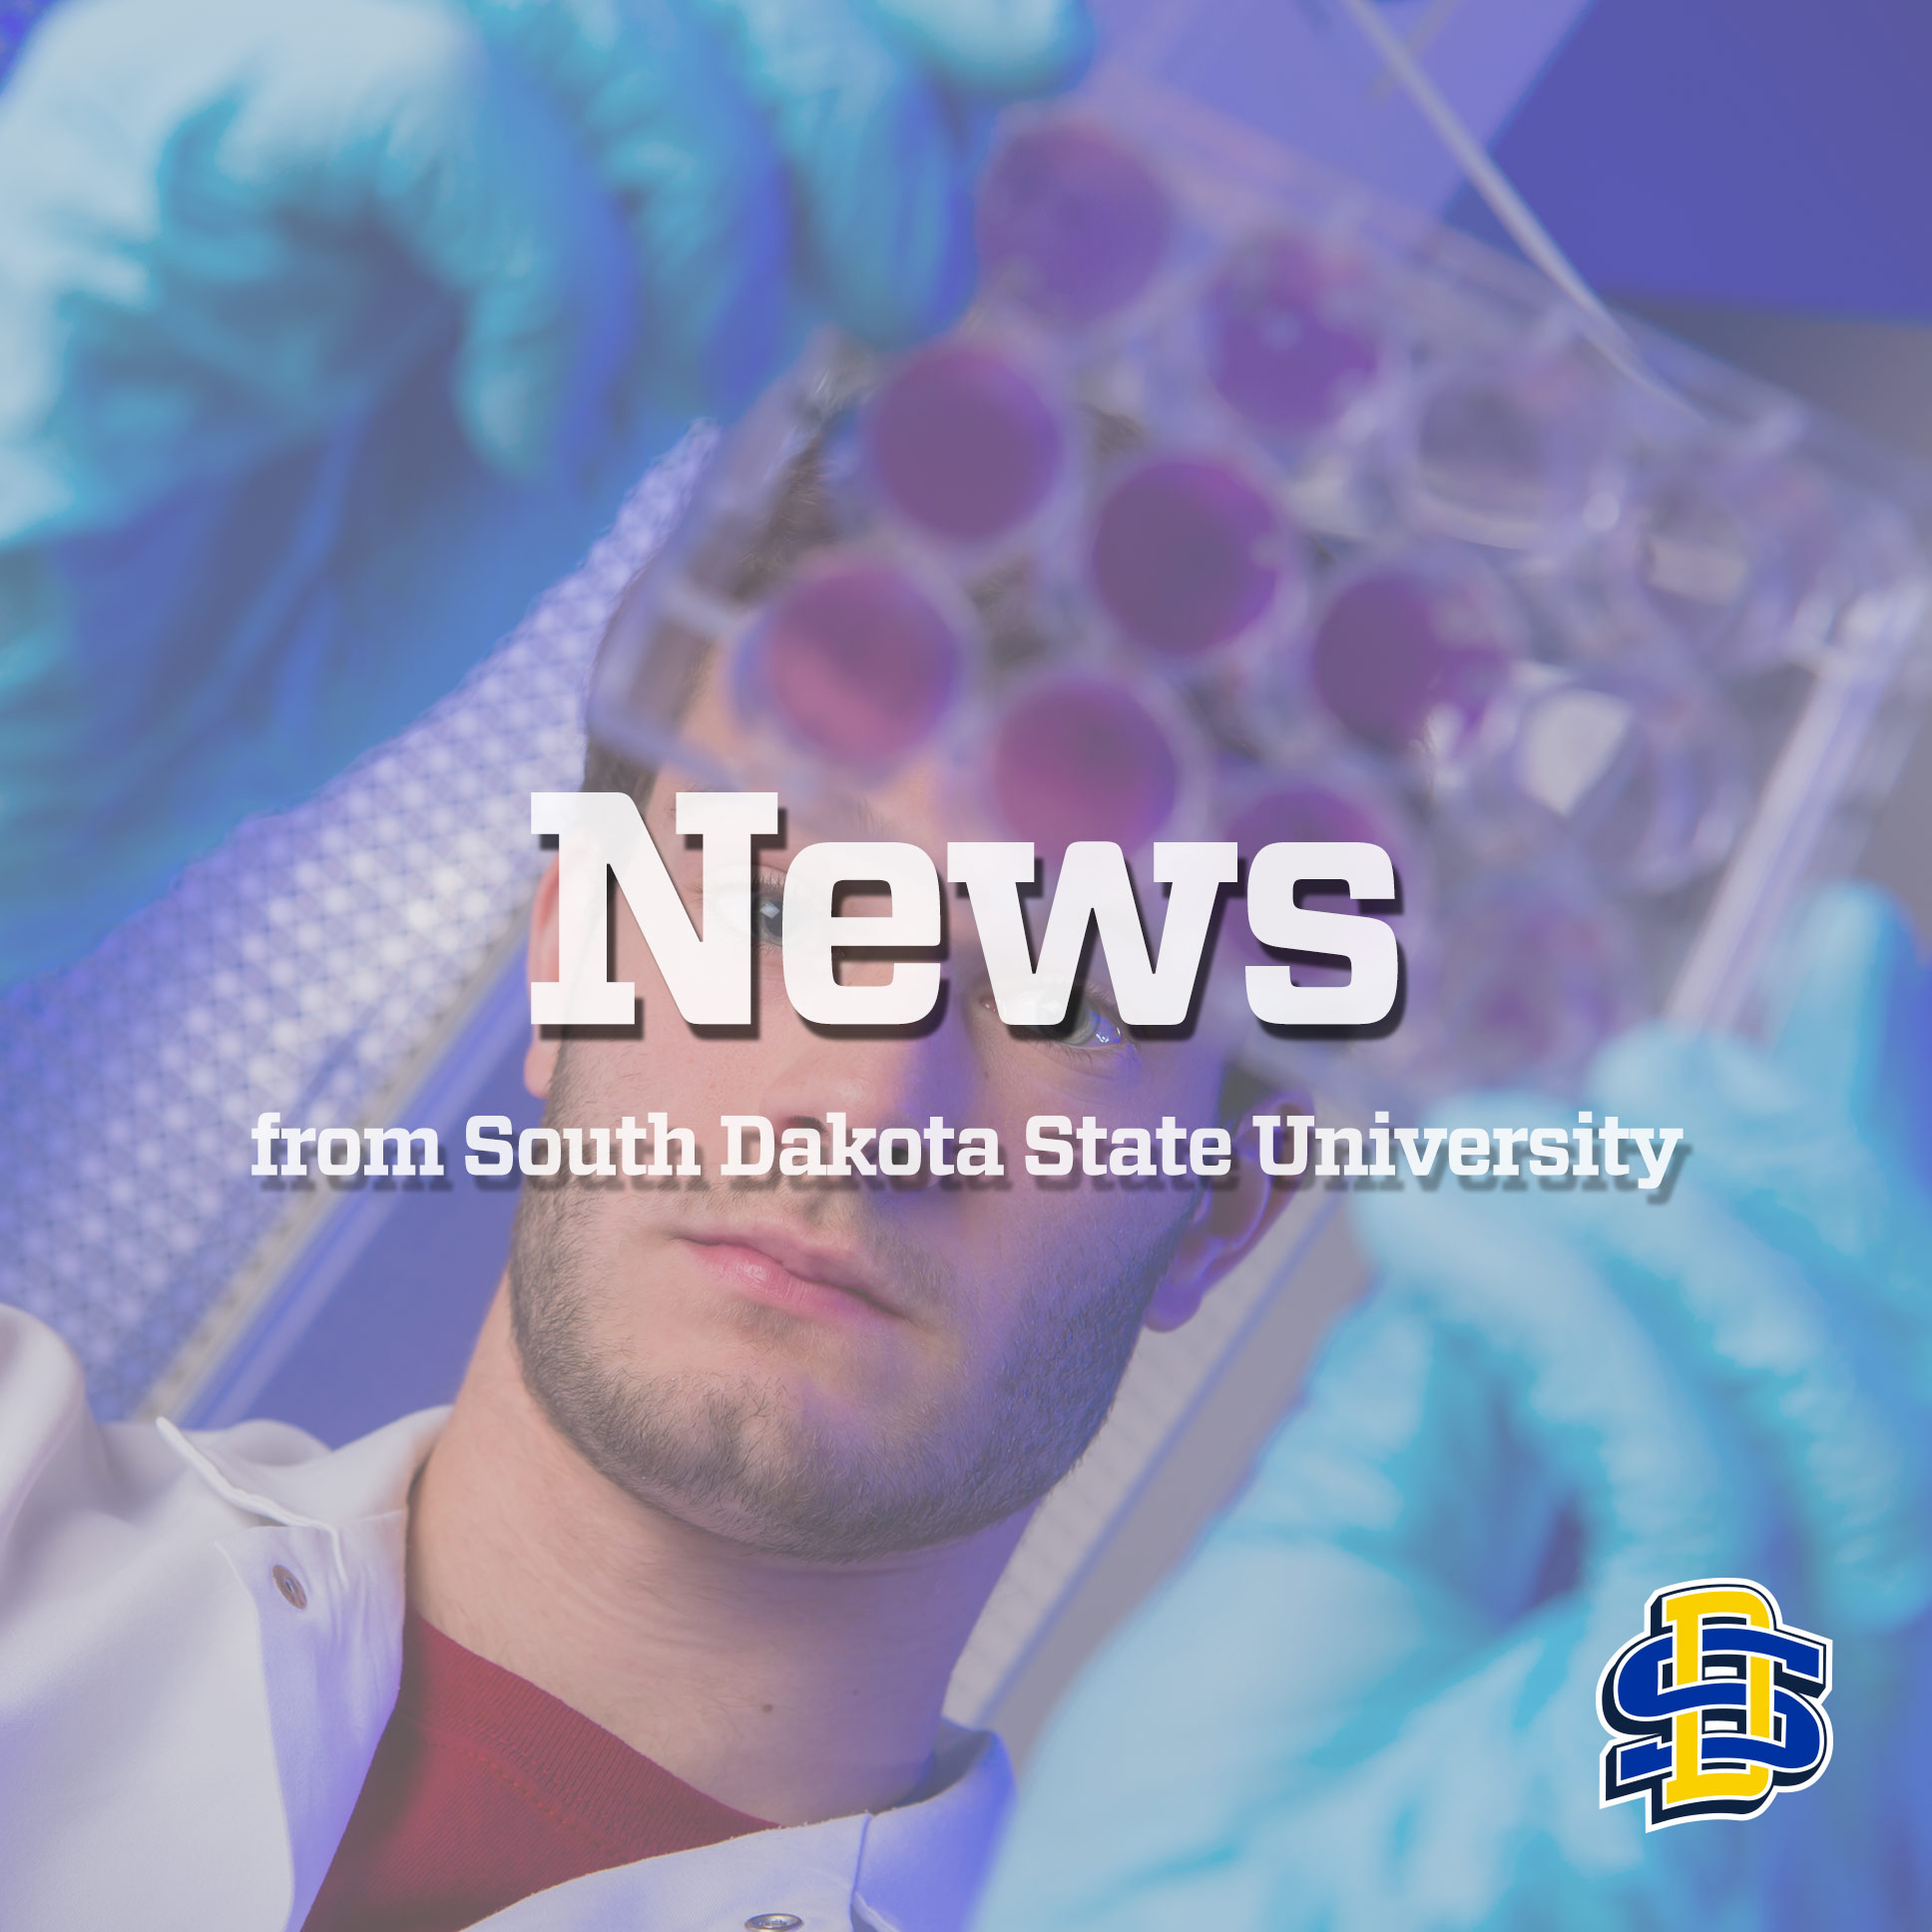 News from South Dakota State University